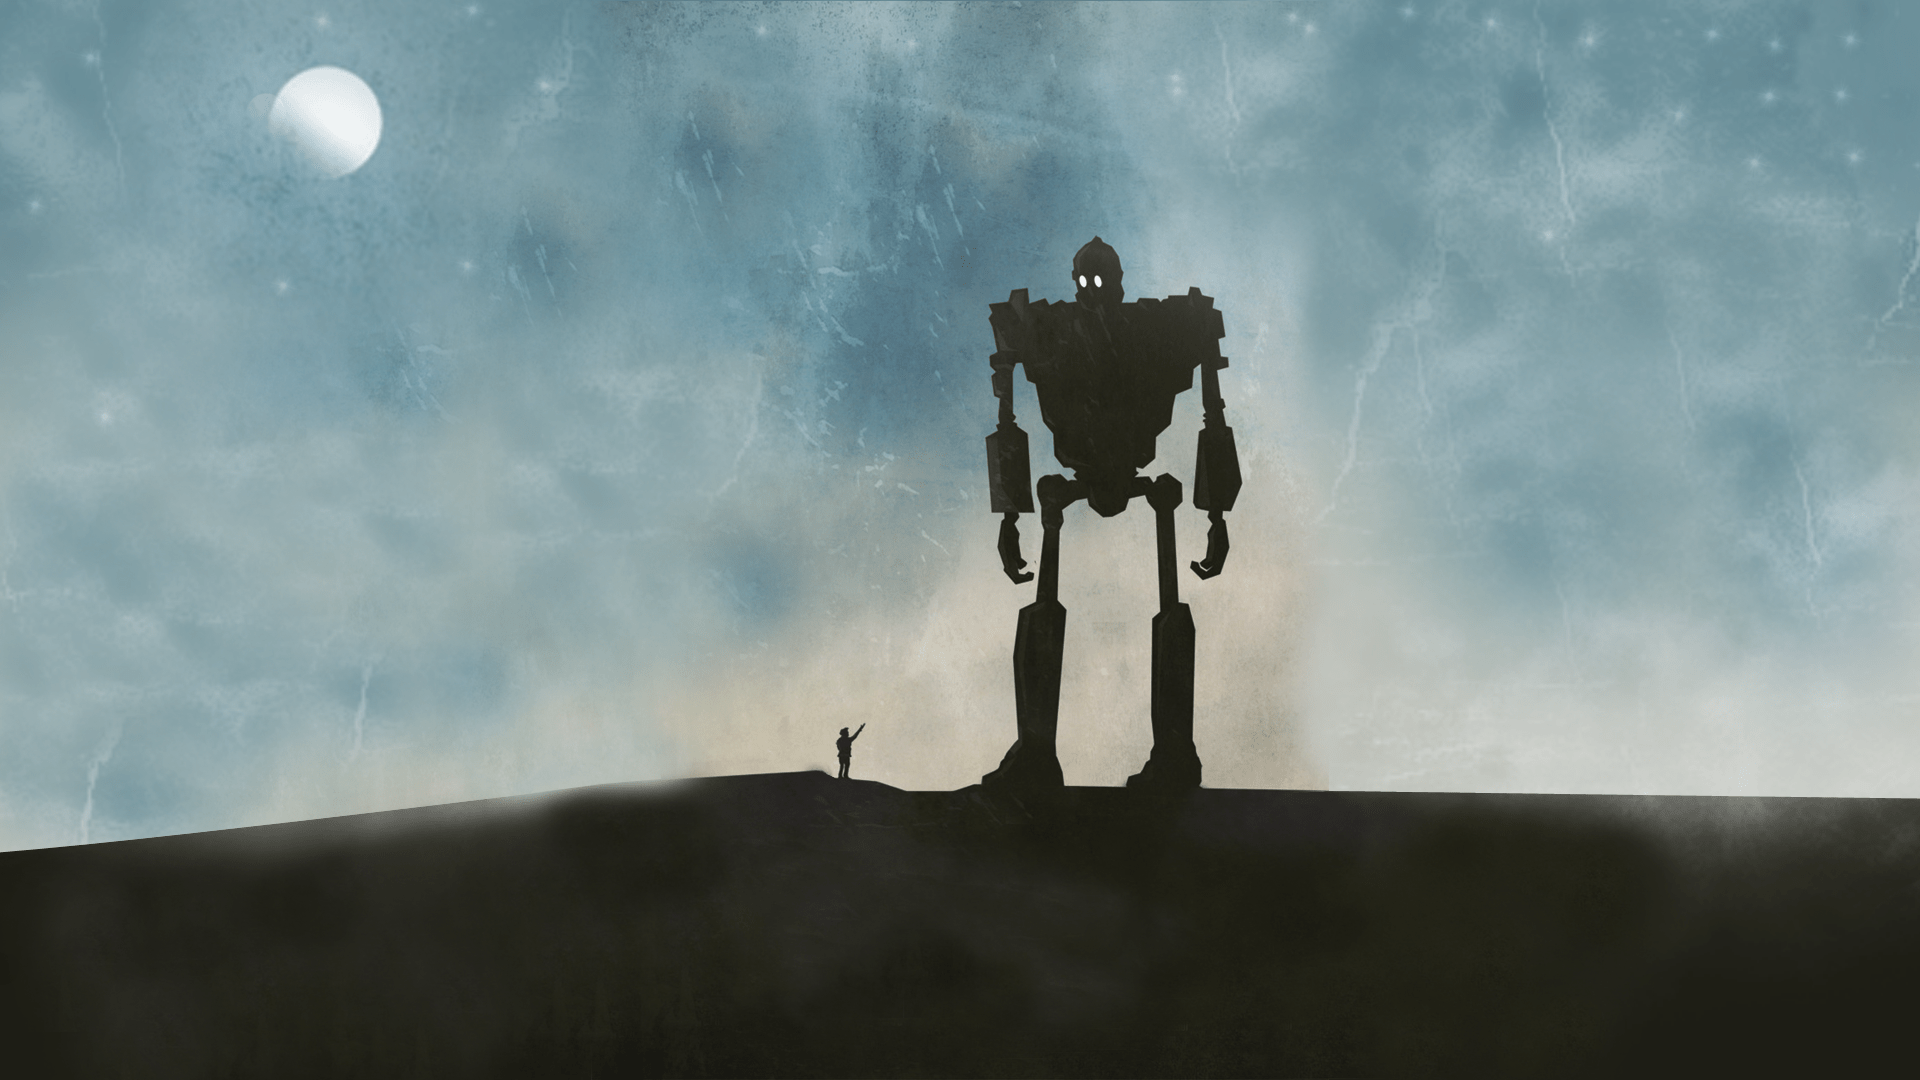 Epic Movie Hd Wallpapers The Iron Giant Hd Wallpapers